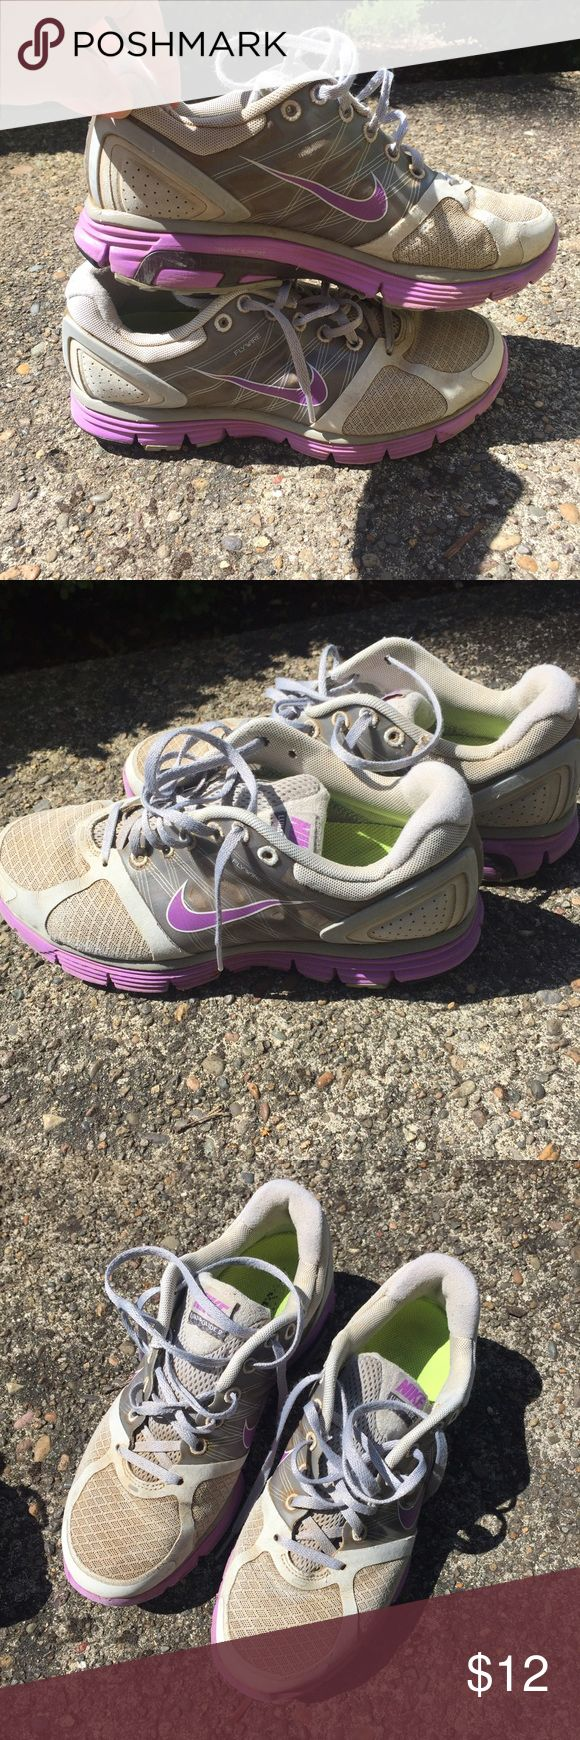 Nike Lunarglide 2 These shoes are very comfortable and great for any type of working out, running included! Well used but still in great shape! Price reflects the condition they're in. WOMENS SIZE 8.5 Nike Shoes Athletic Shoes